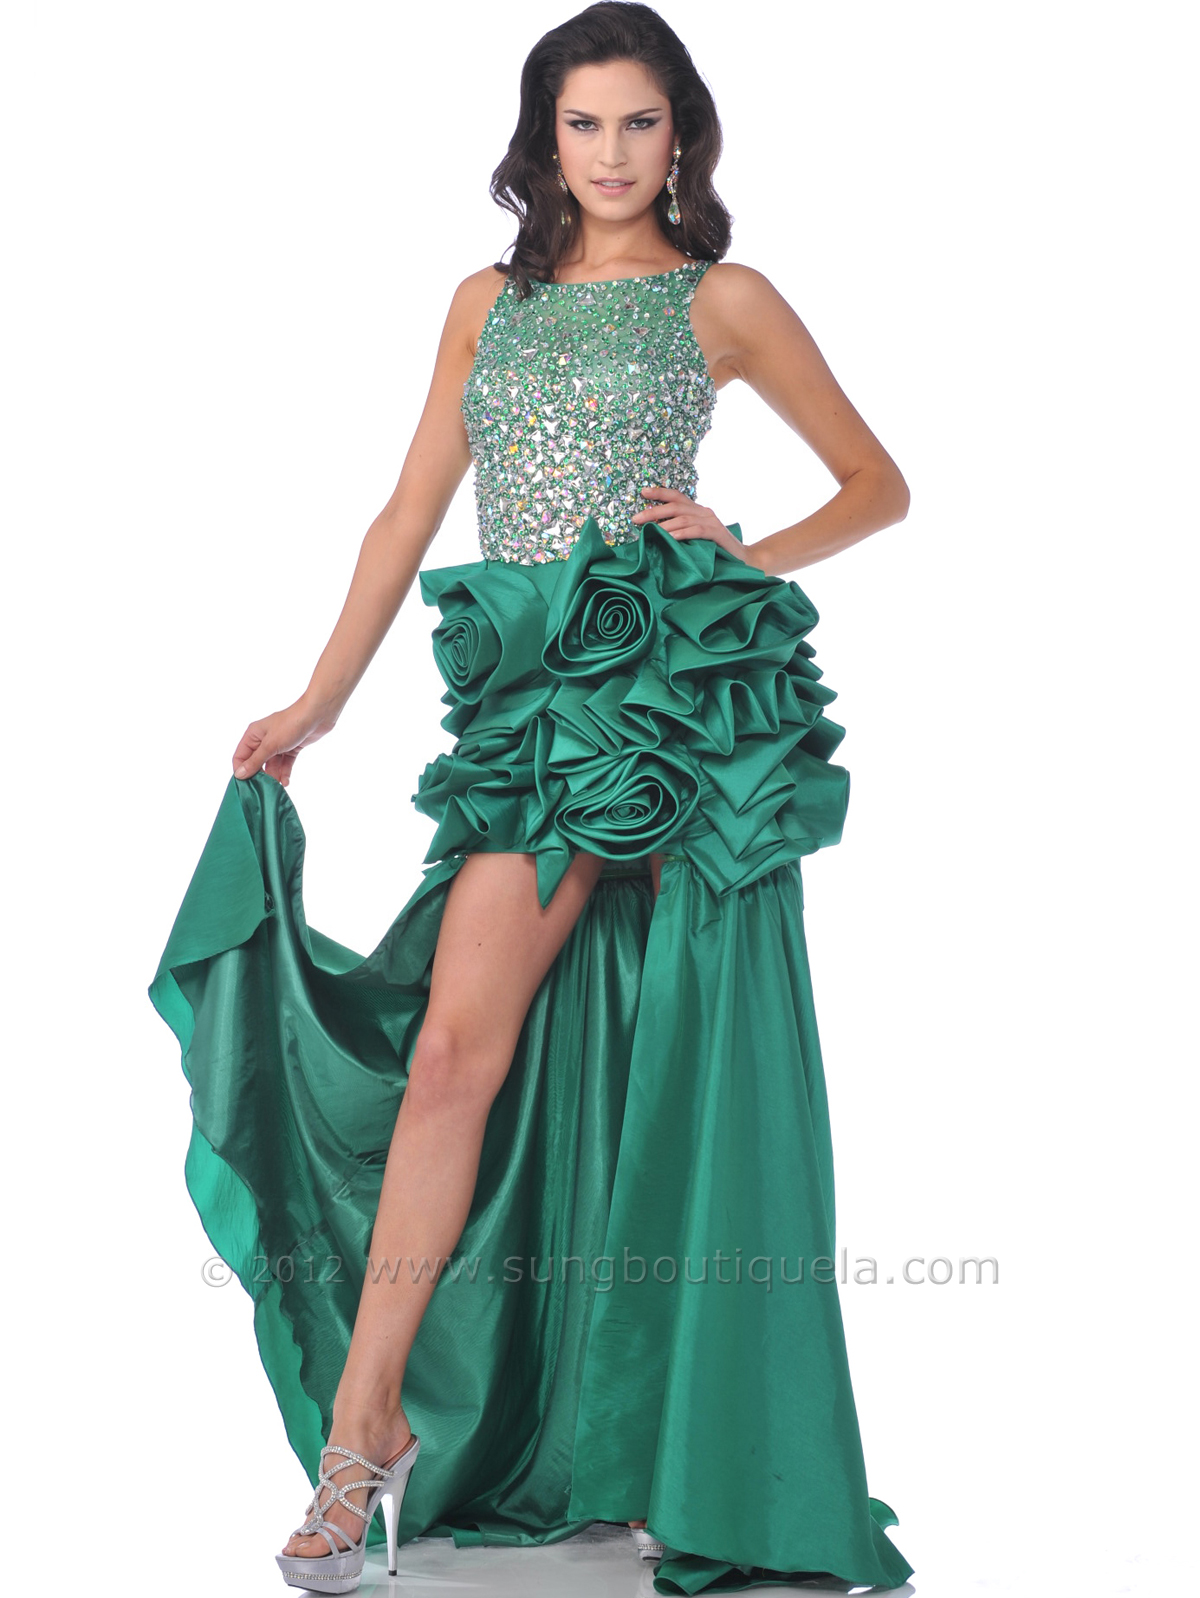 Collection Prom Shops Near Me Pictures - Fashionworksflooring